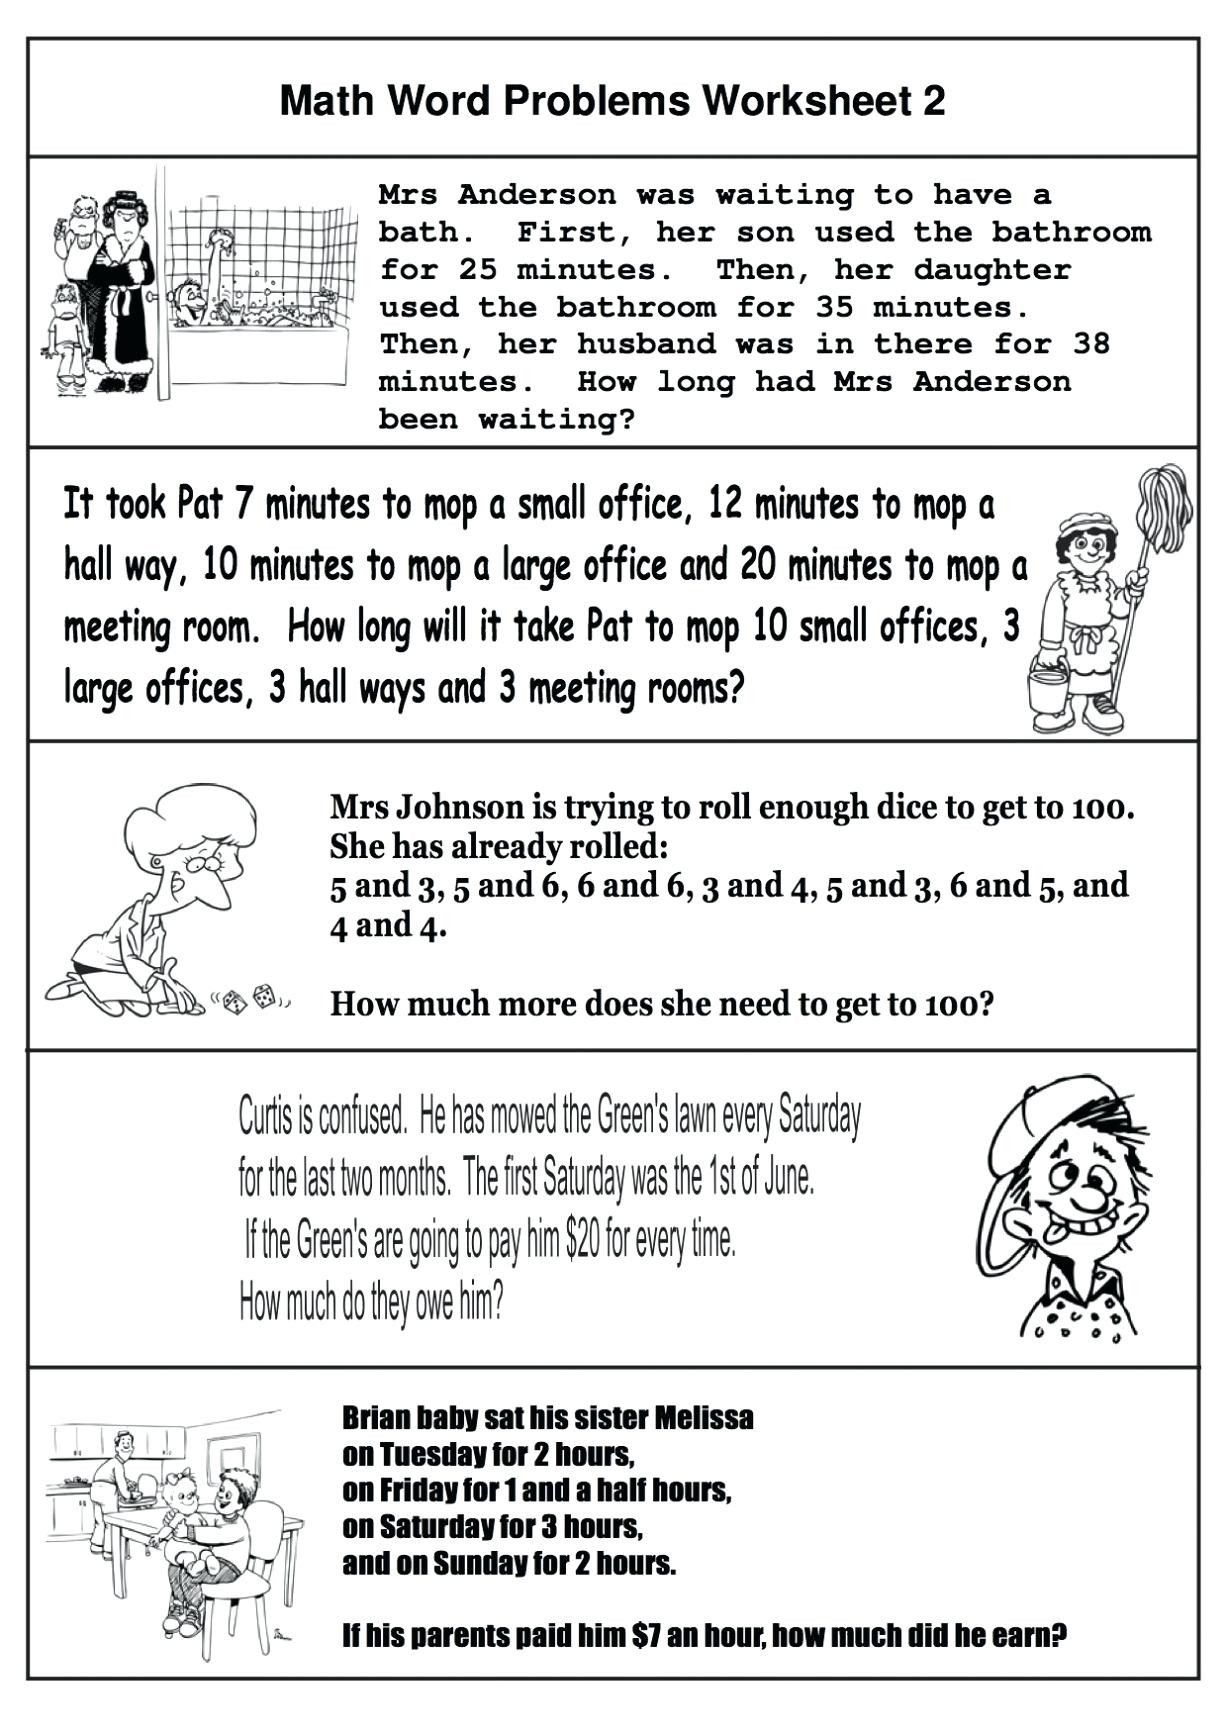 hight resolution of 4 Free Math Worksheets Third Grade 3 Addition Word Problems on Worksheets  Ideas 3084